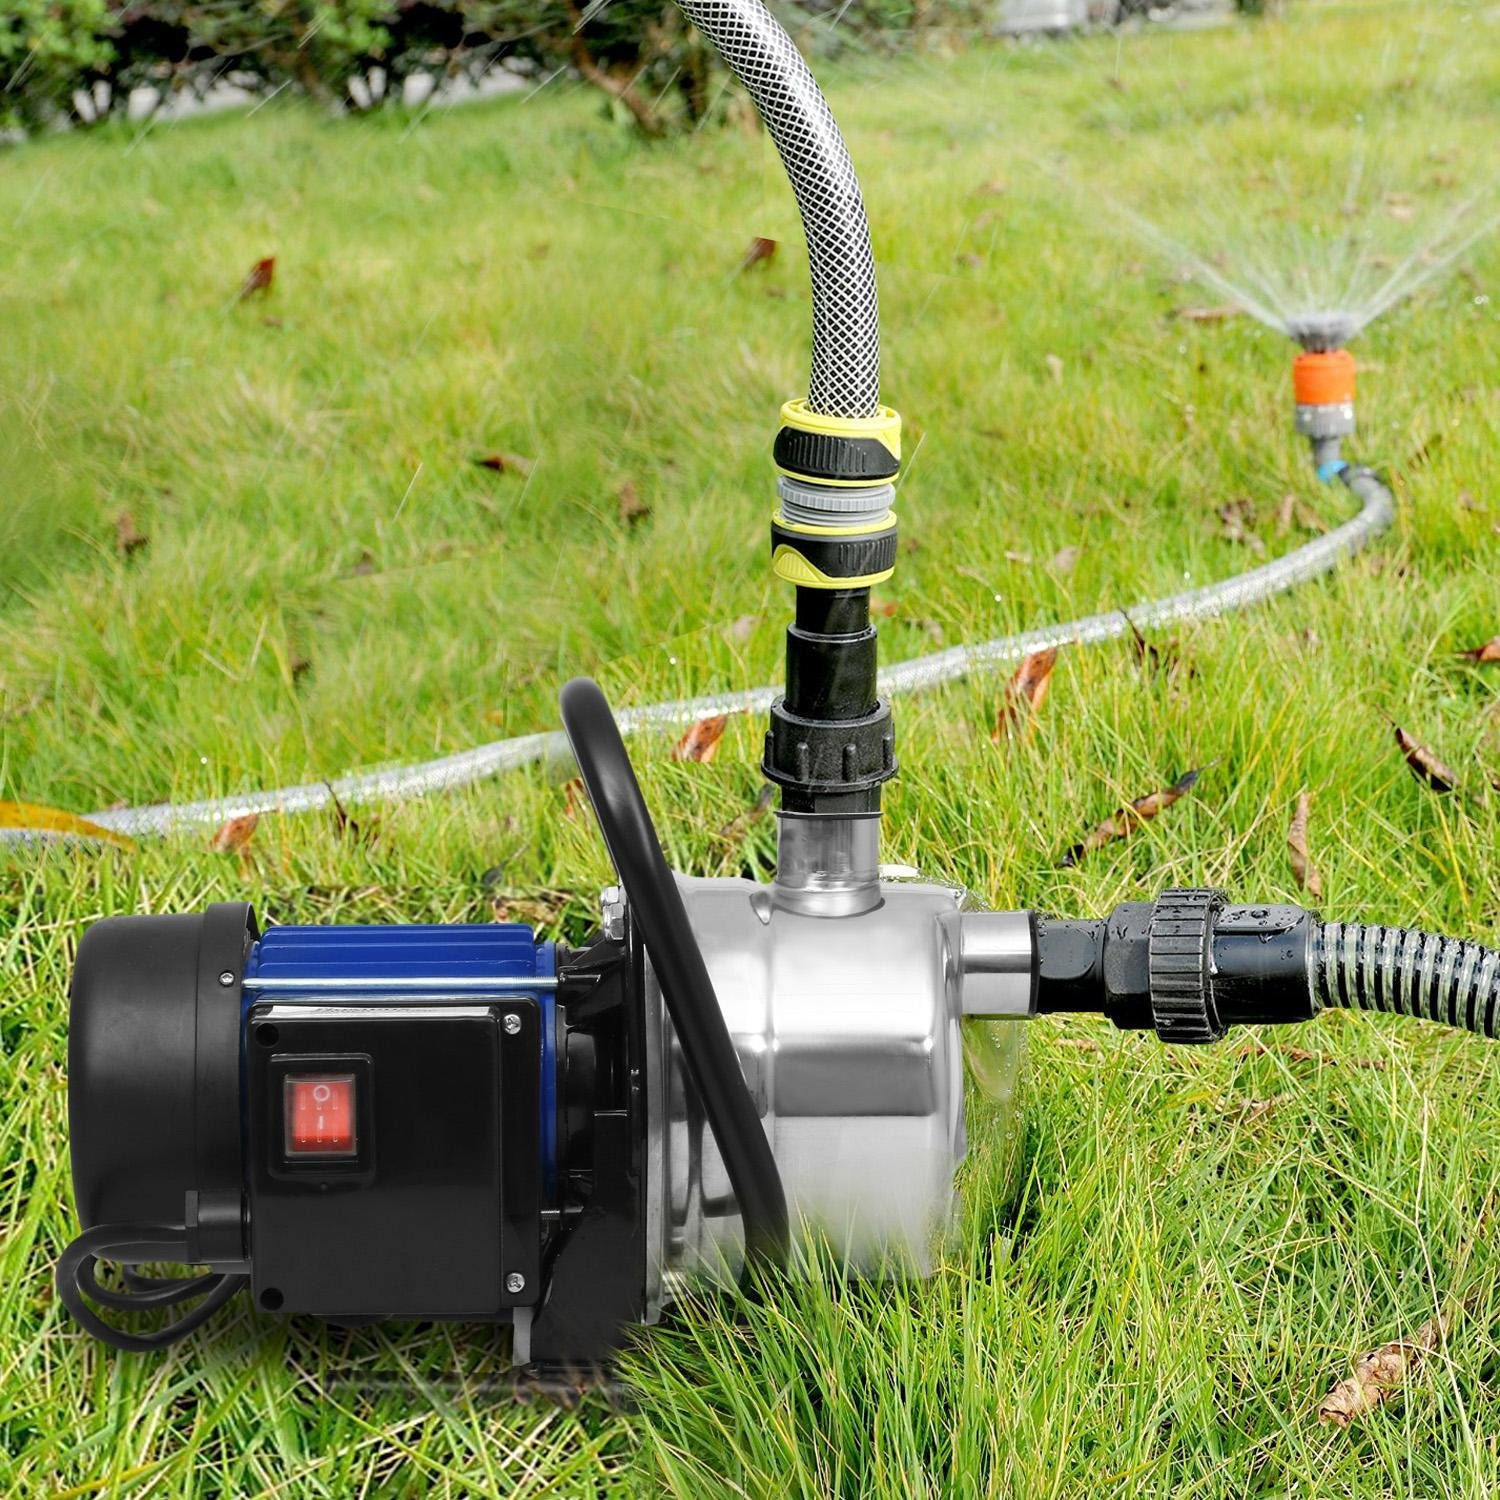 Meflying 1.6HP Lawn Sprinkling Pump , Automatic ON/OFF Booster Pump for Garden Yard Outdoors Home Irrigation(US STOCK)